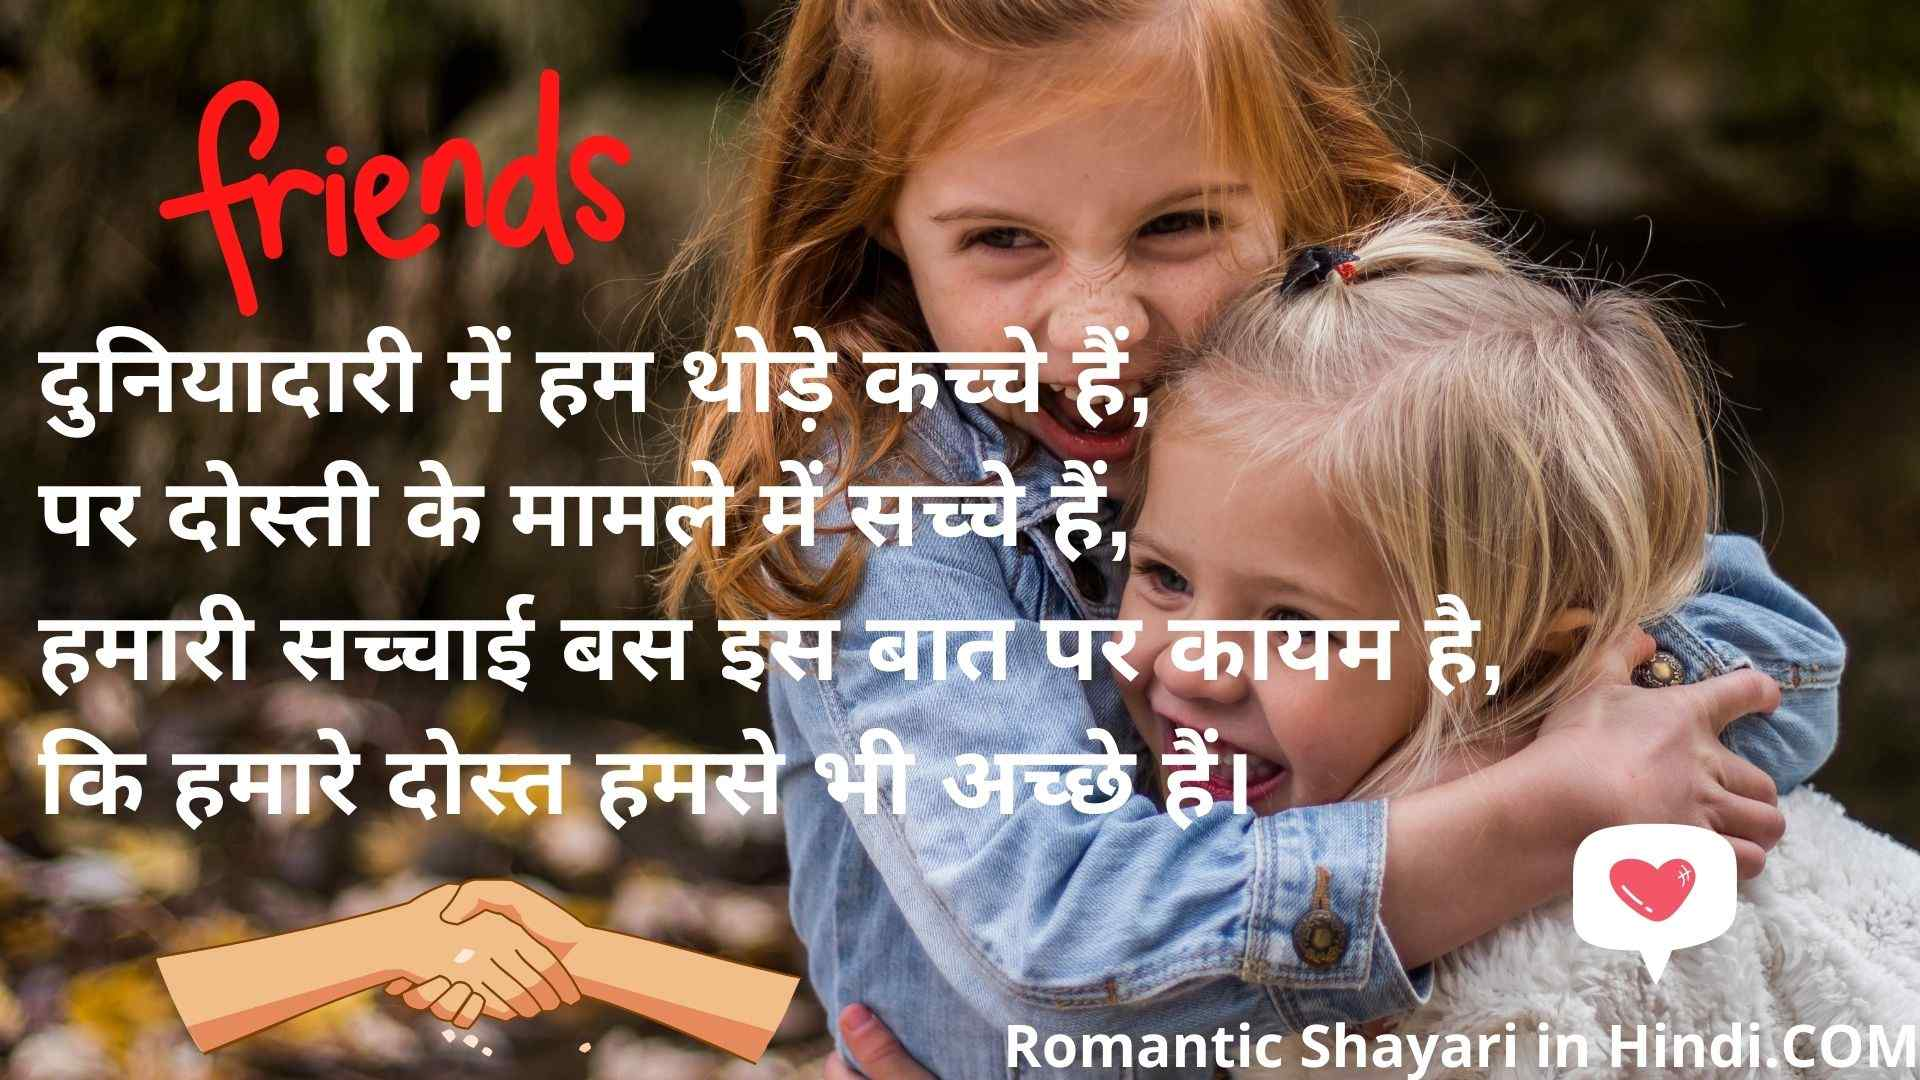 Friendship Status in Hindi and English for Whatsapp and Facebook